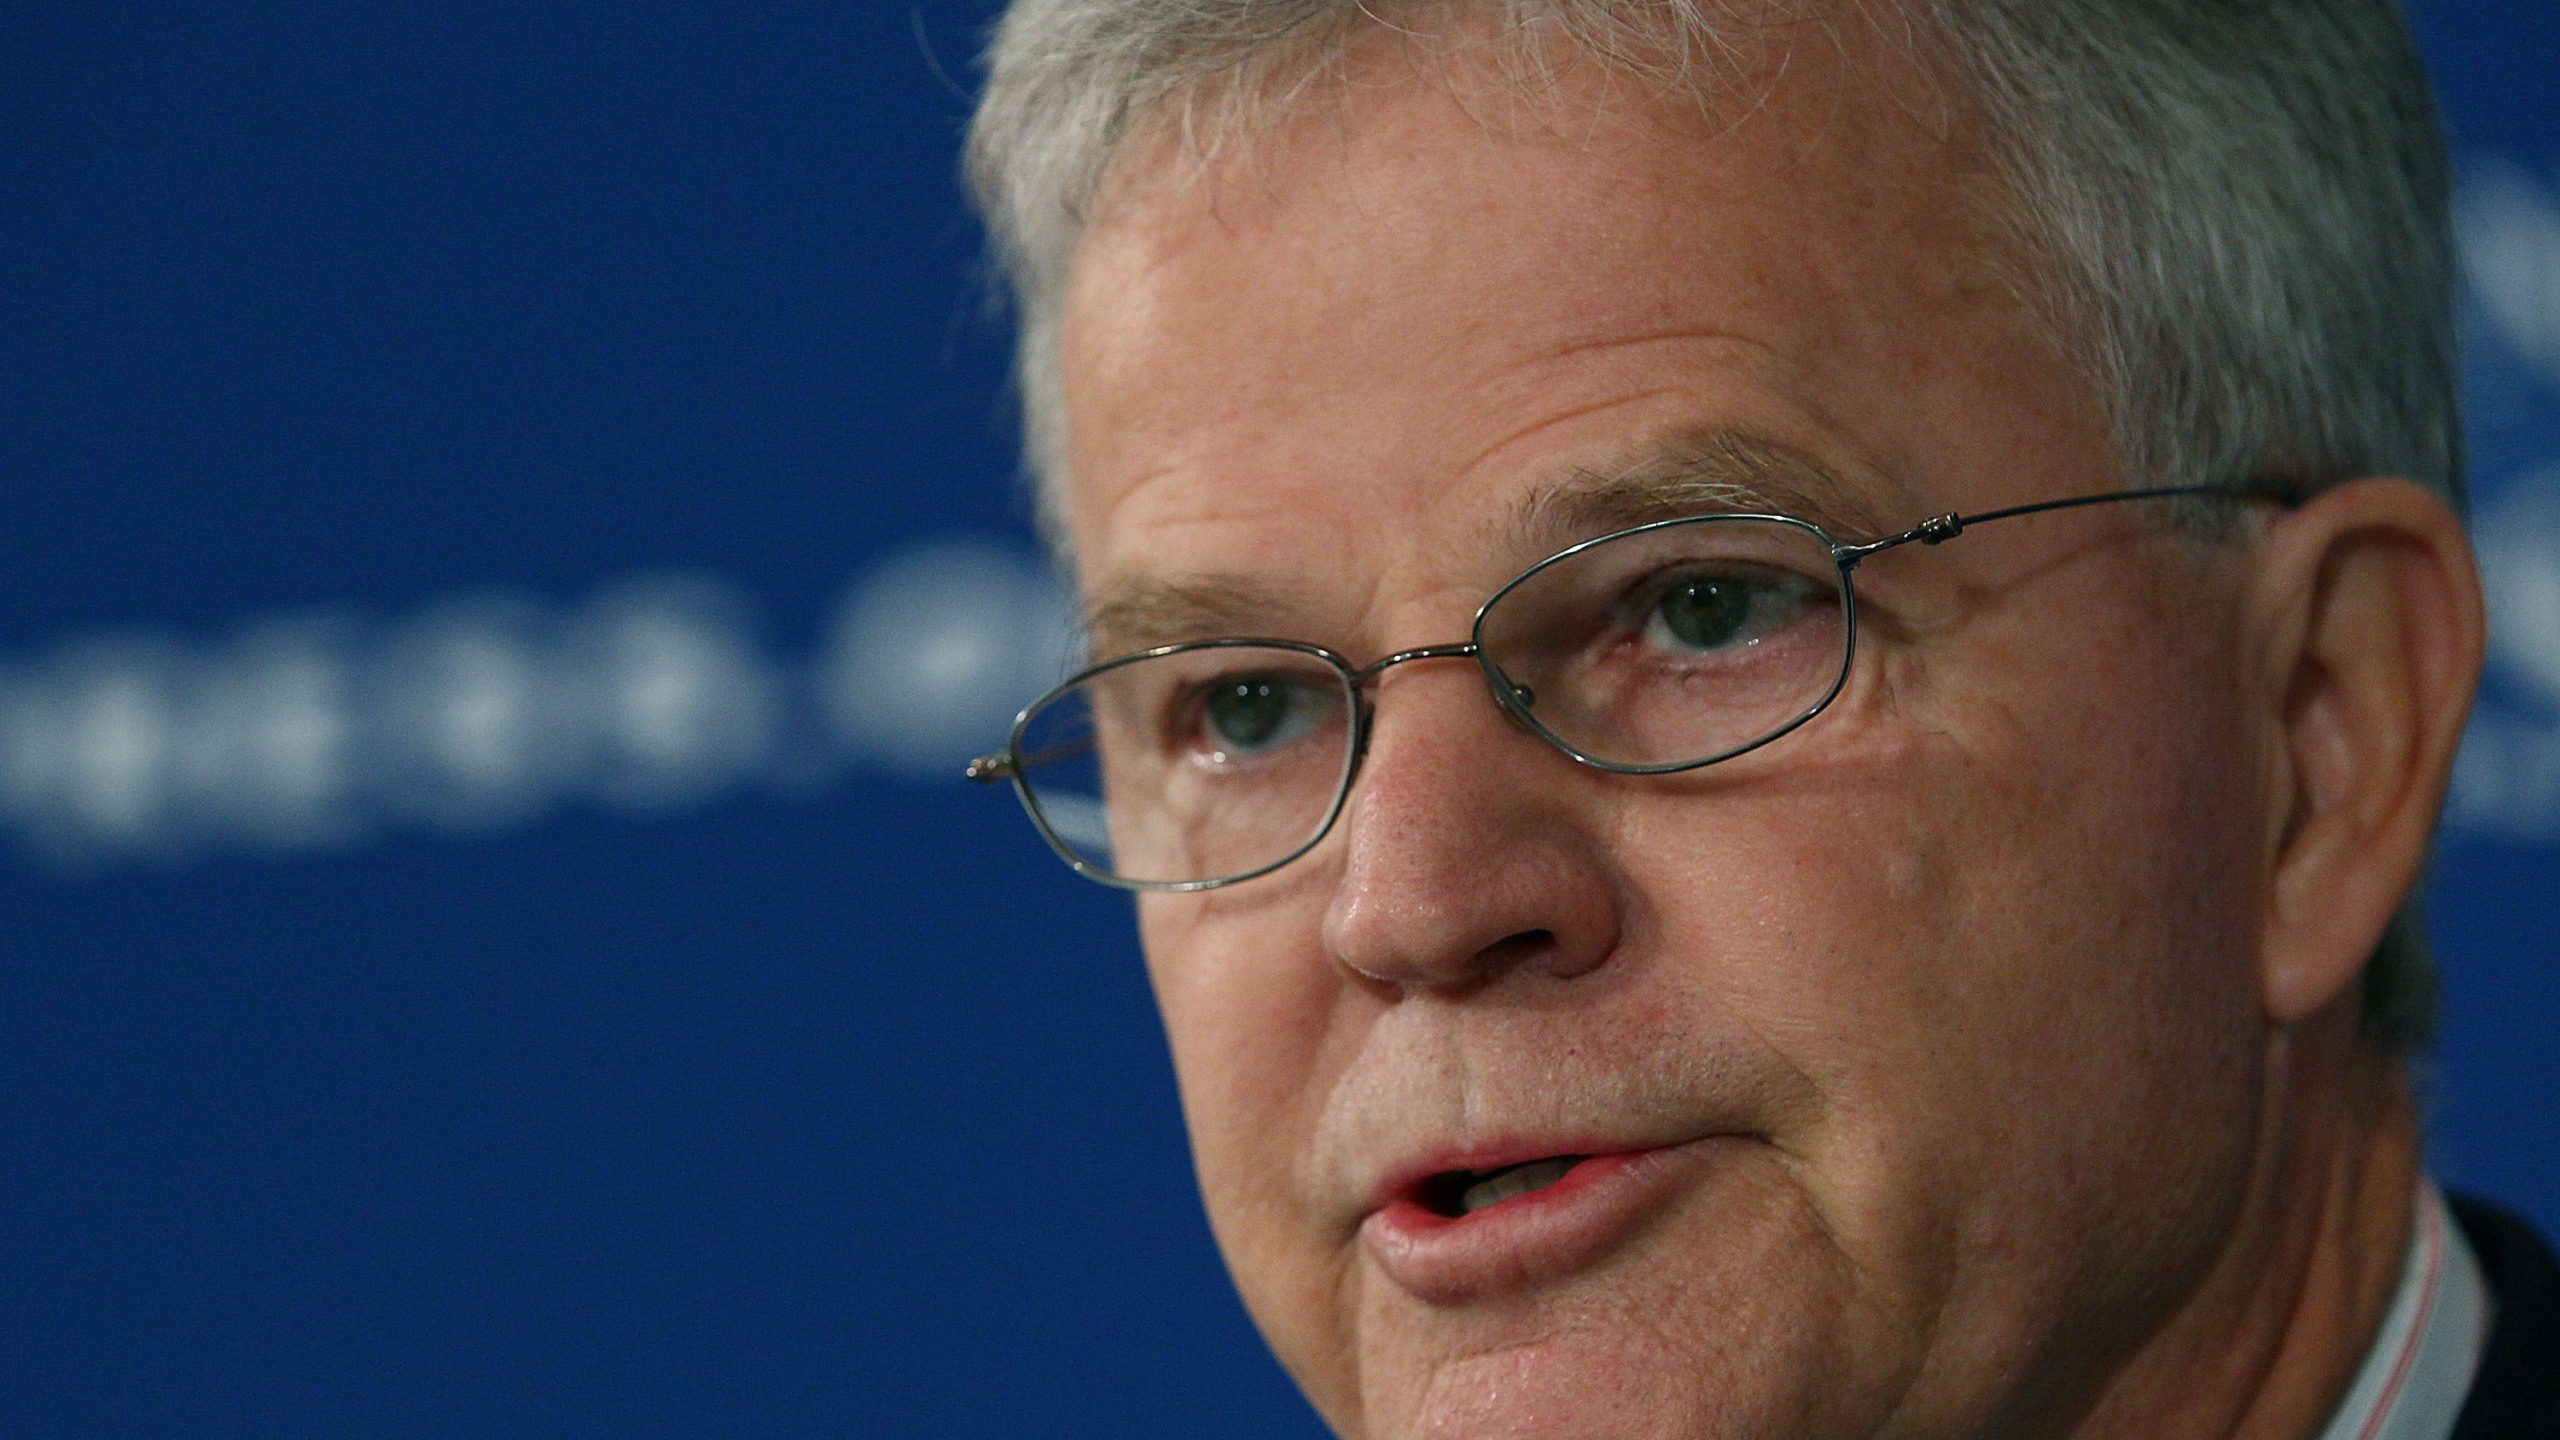 WASHINGTON, DC - AUGUST 15: Republican candidate for president Buddy Roemer, speaks at the National Press Club, on August 15, 2011 in Washington, DC. Roemer said that large anonymous campaign donations, and special interest money remain a corrupting influence on todays politics. (Photo by Mark Wilson/Getty Images)